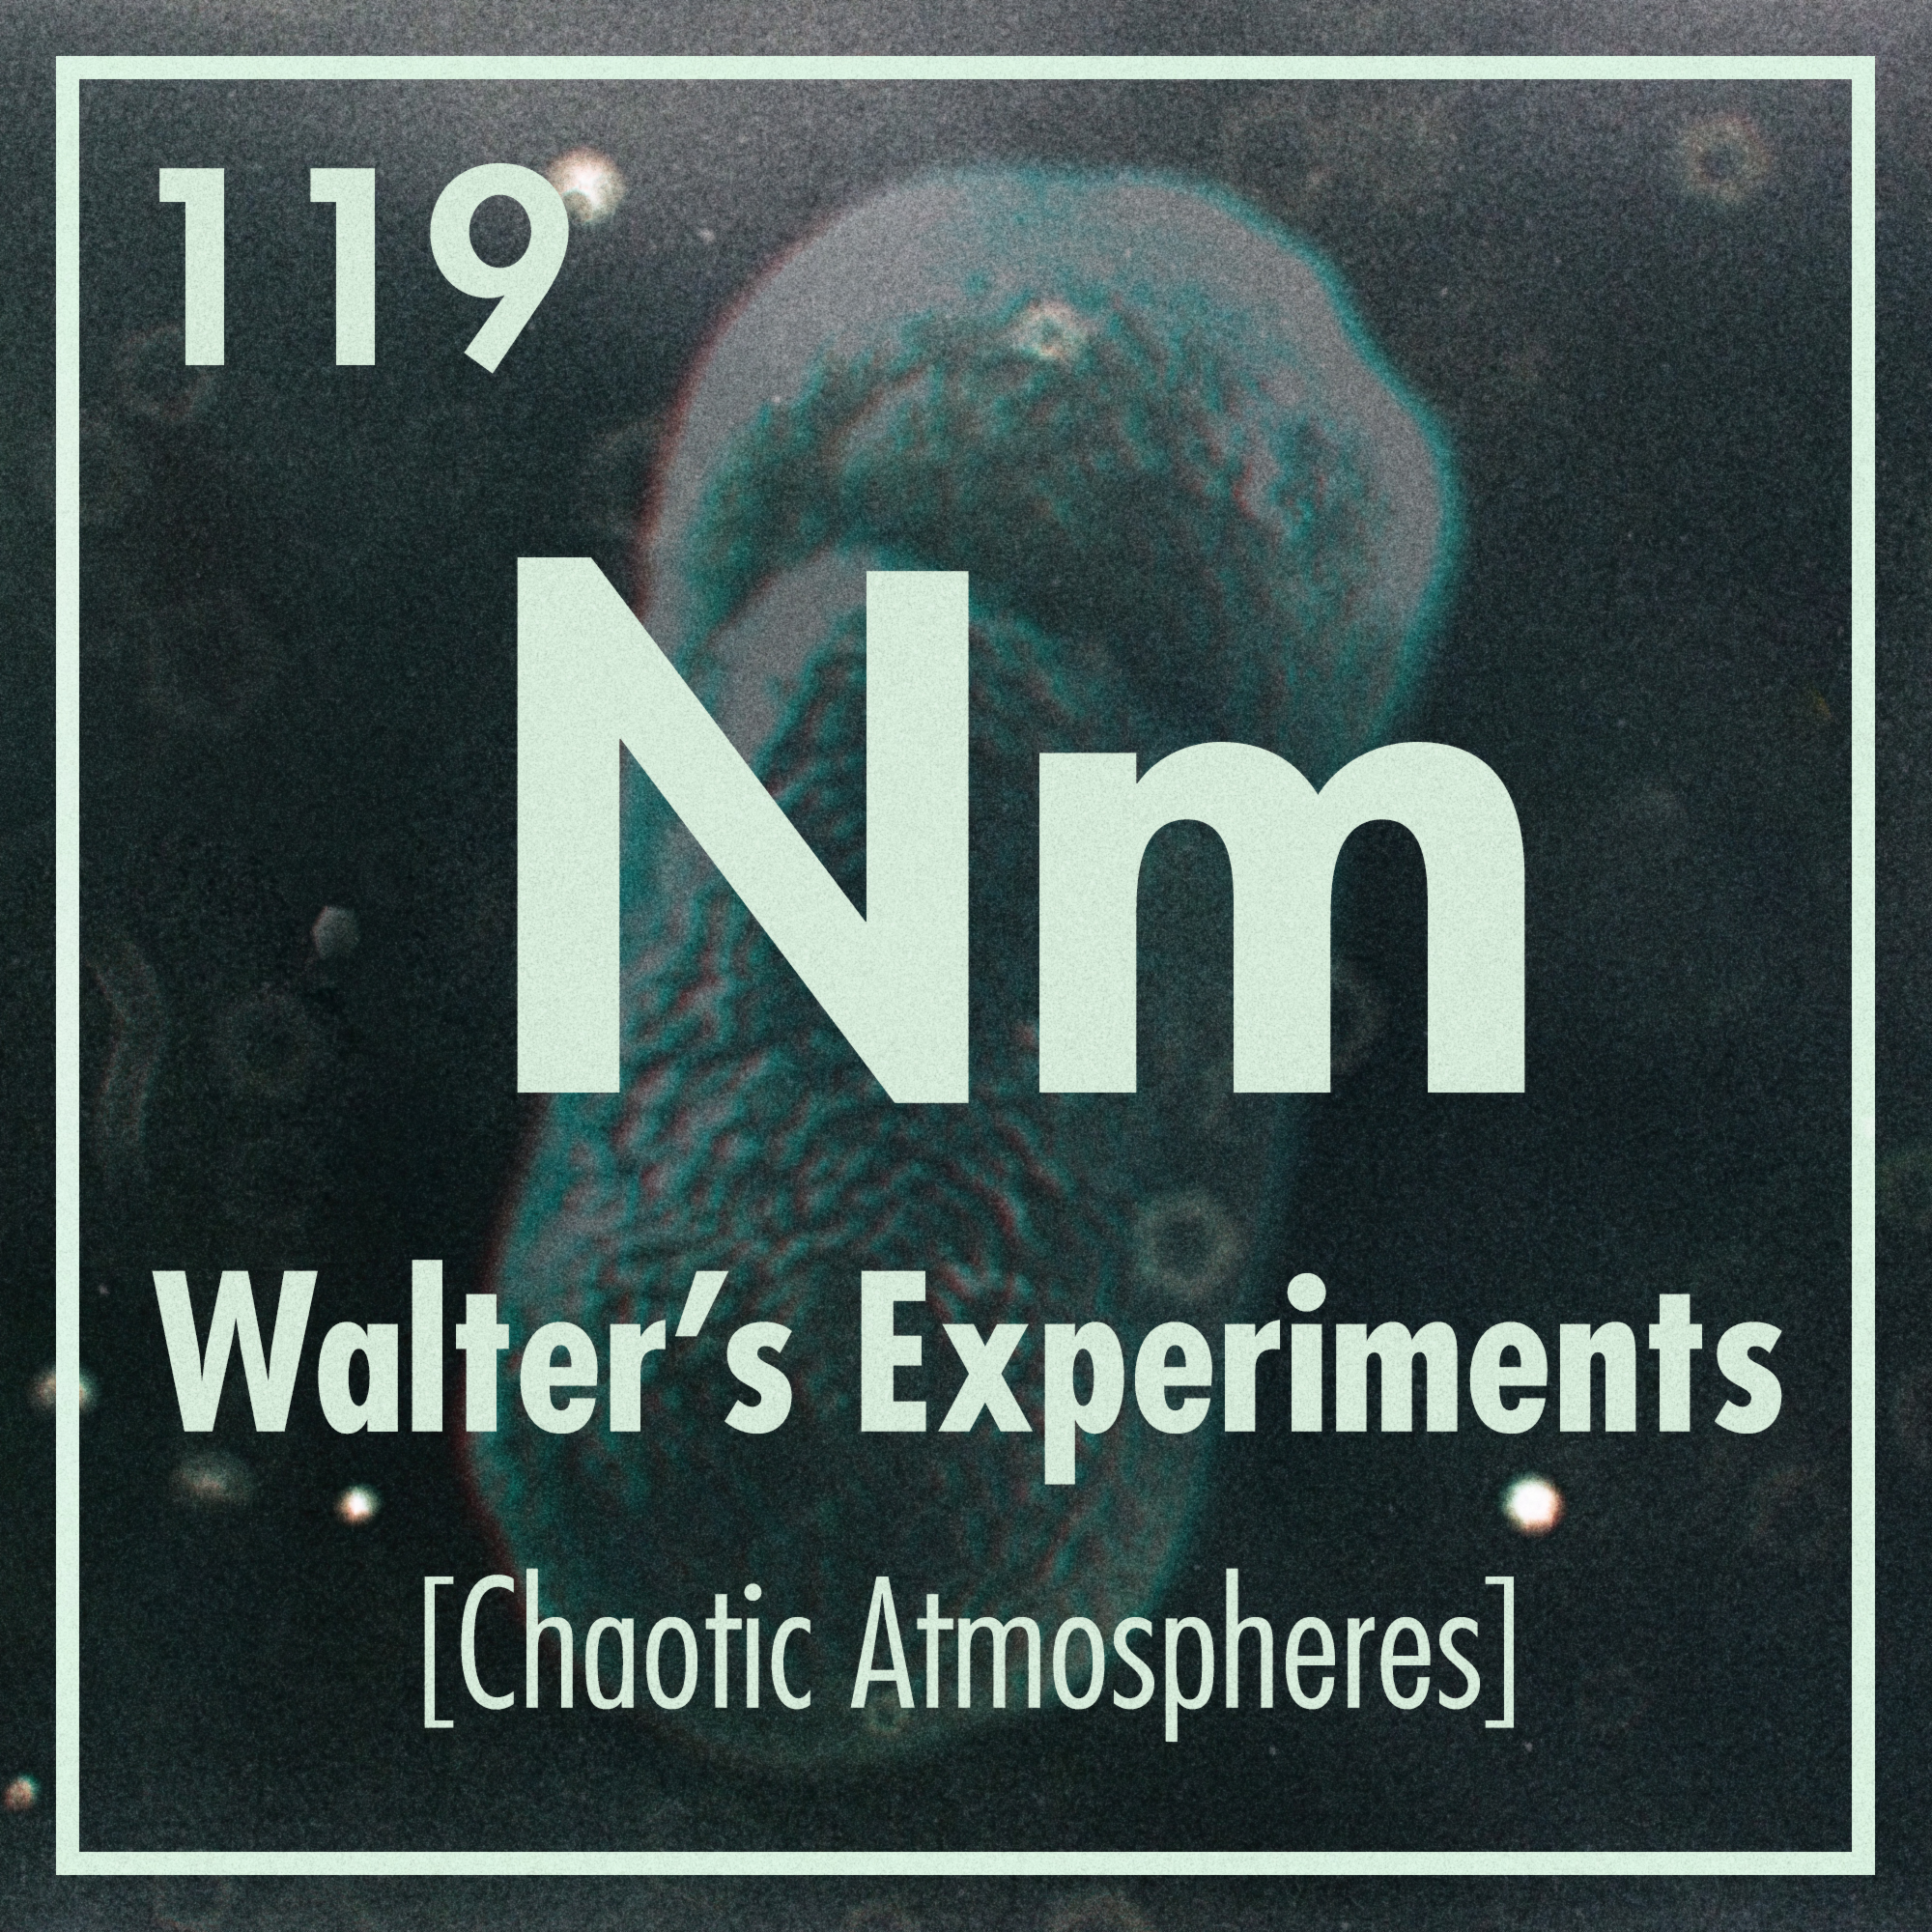 CHAOTIC ATMOSPHERES,  Walter's experiments